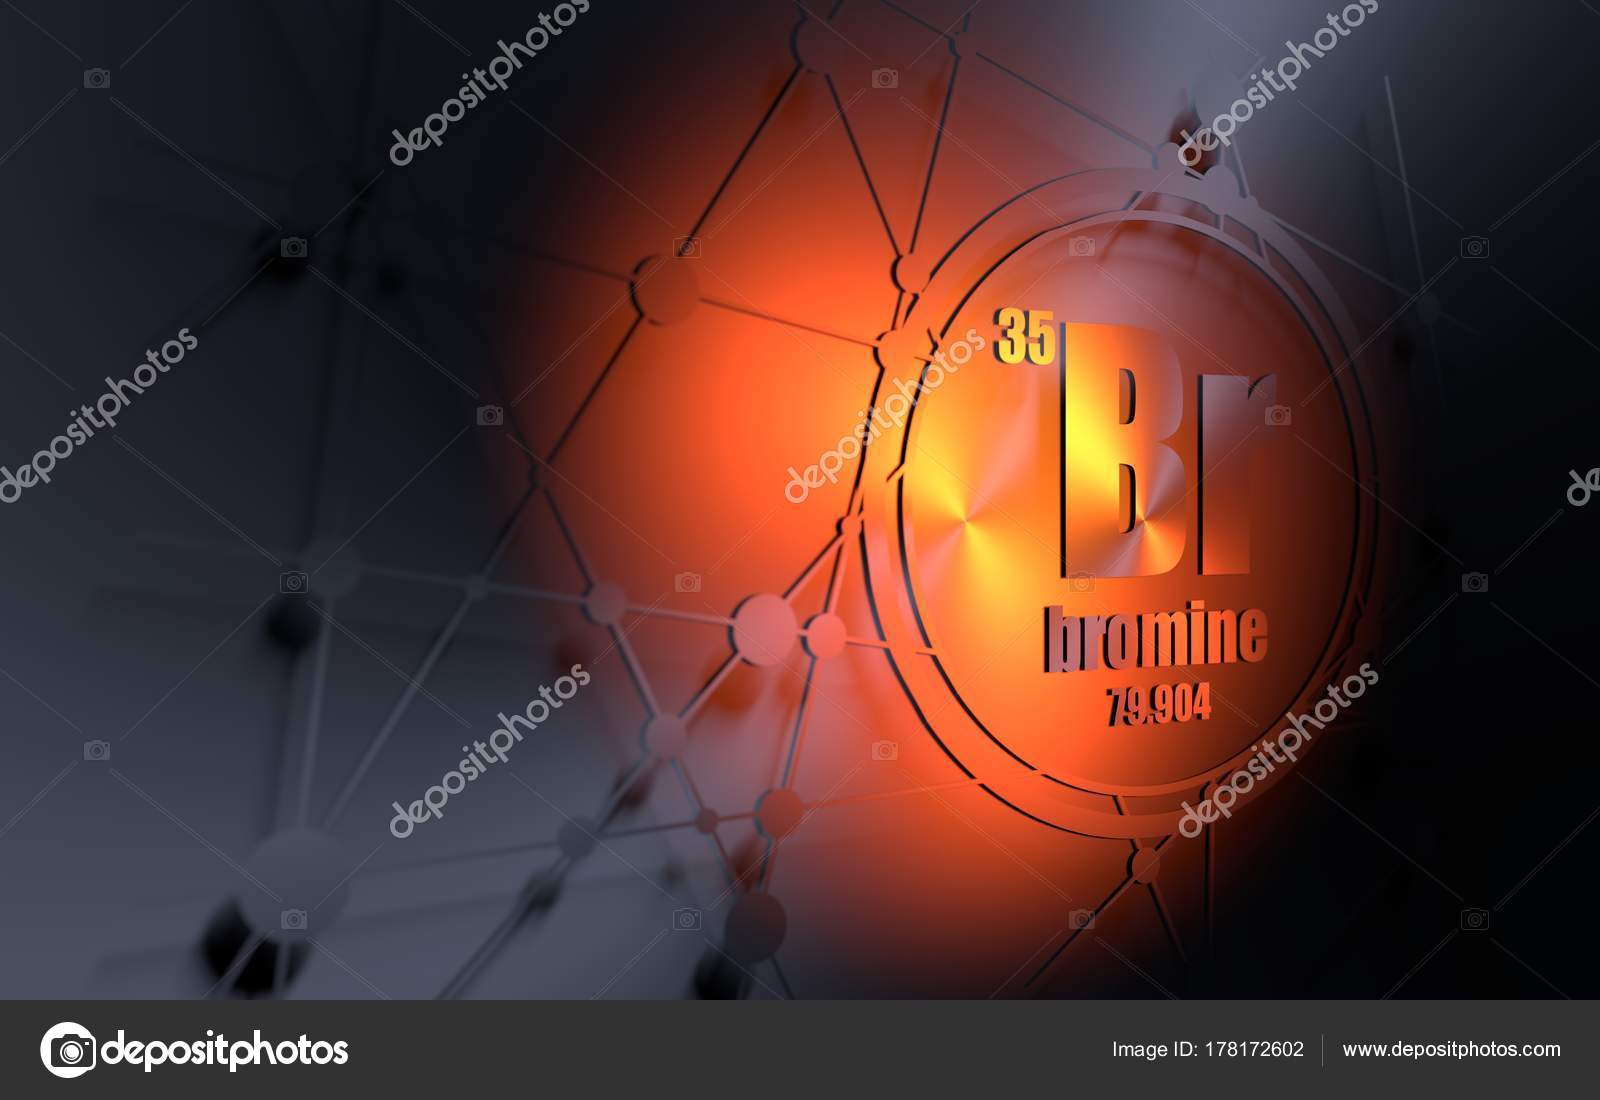 bromine chemical element sign with atomic number and atomic weight chemical element of periodic table molecule and communication background - Bromine Periodic Table Atomic Number